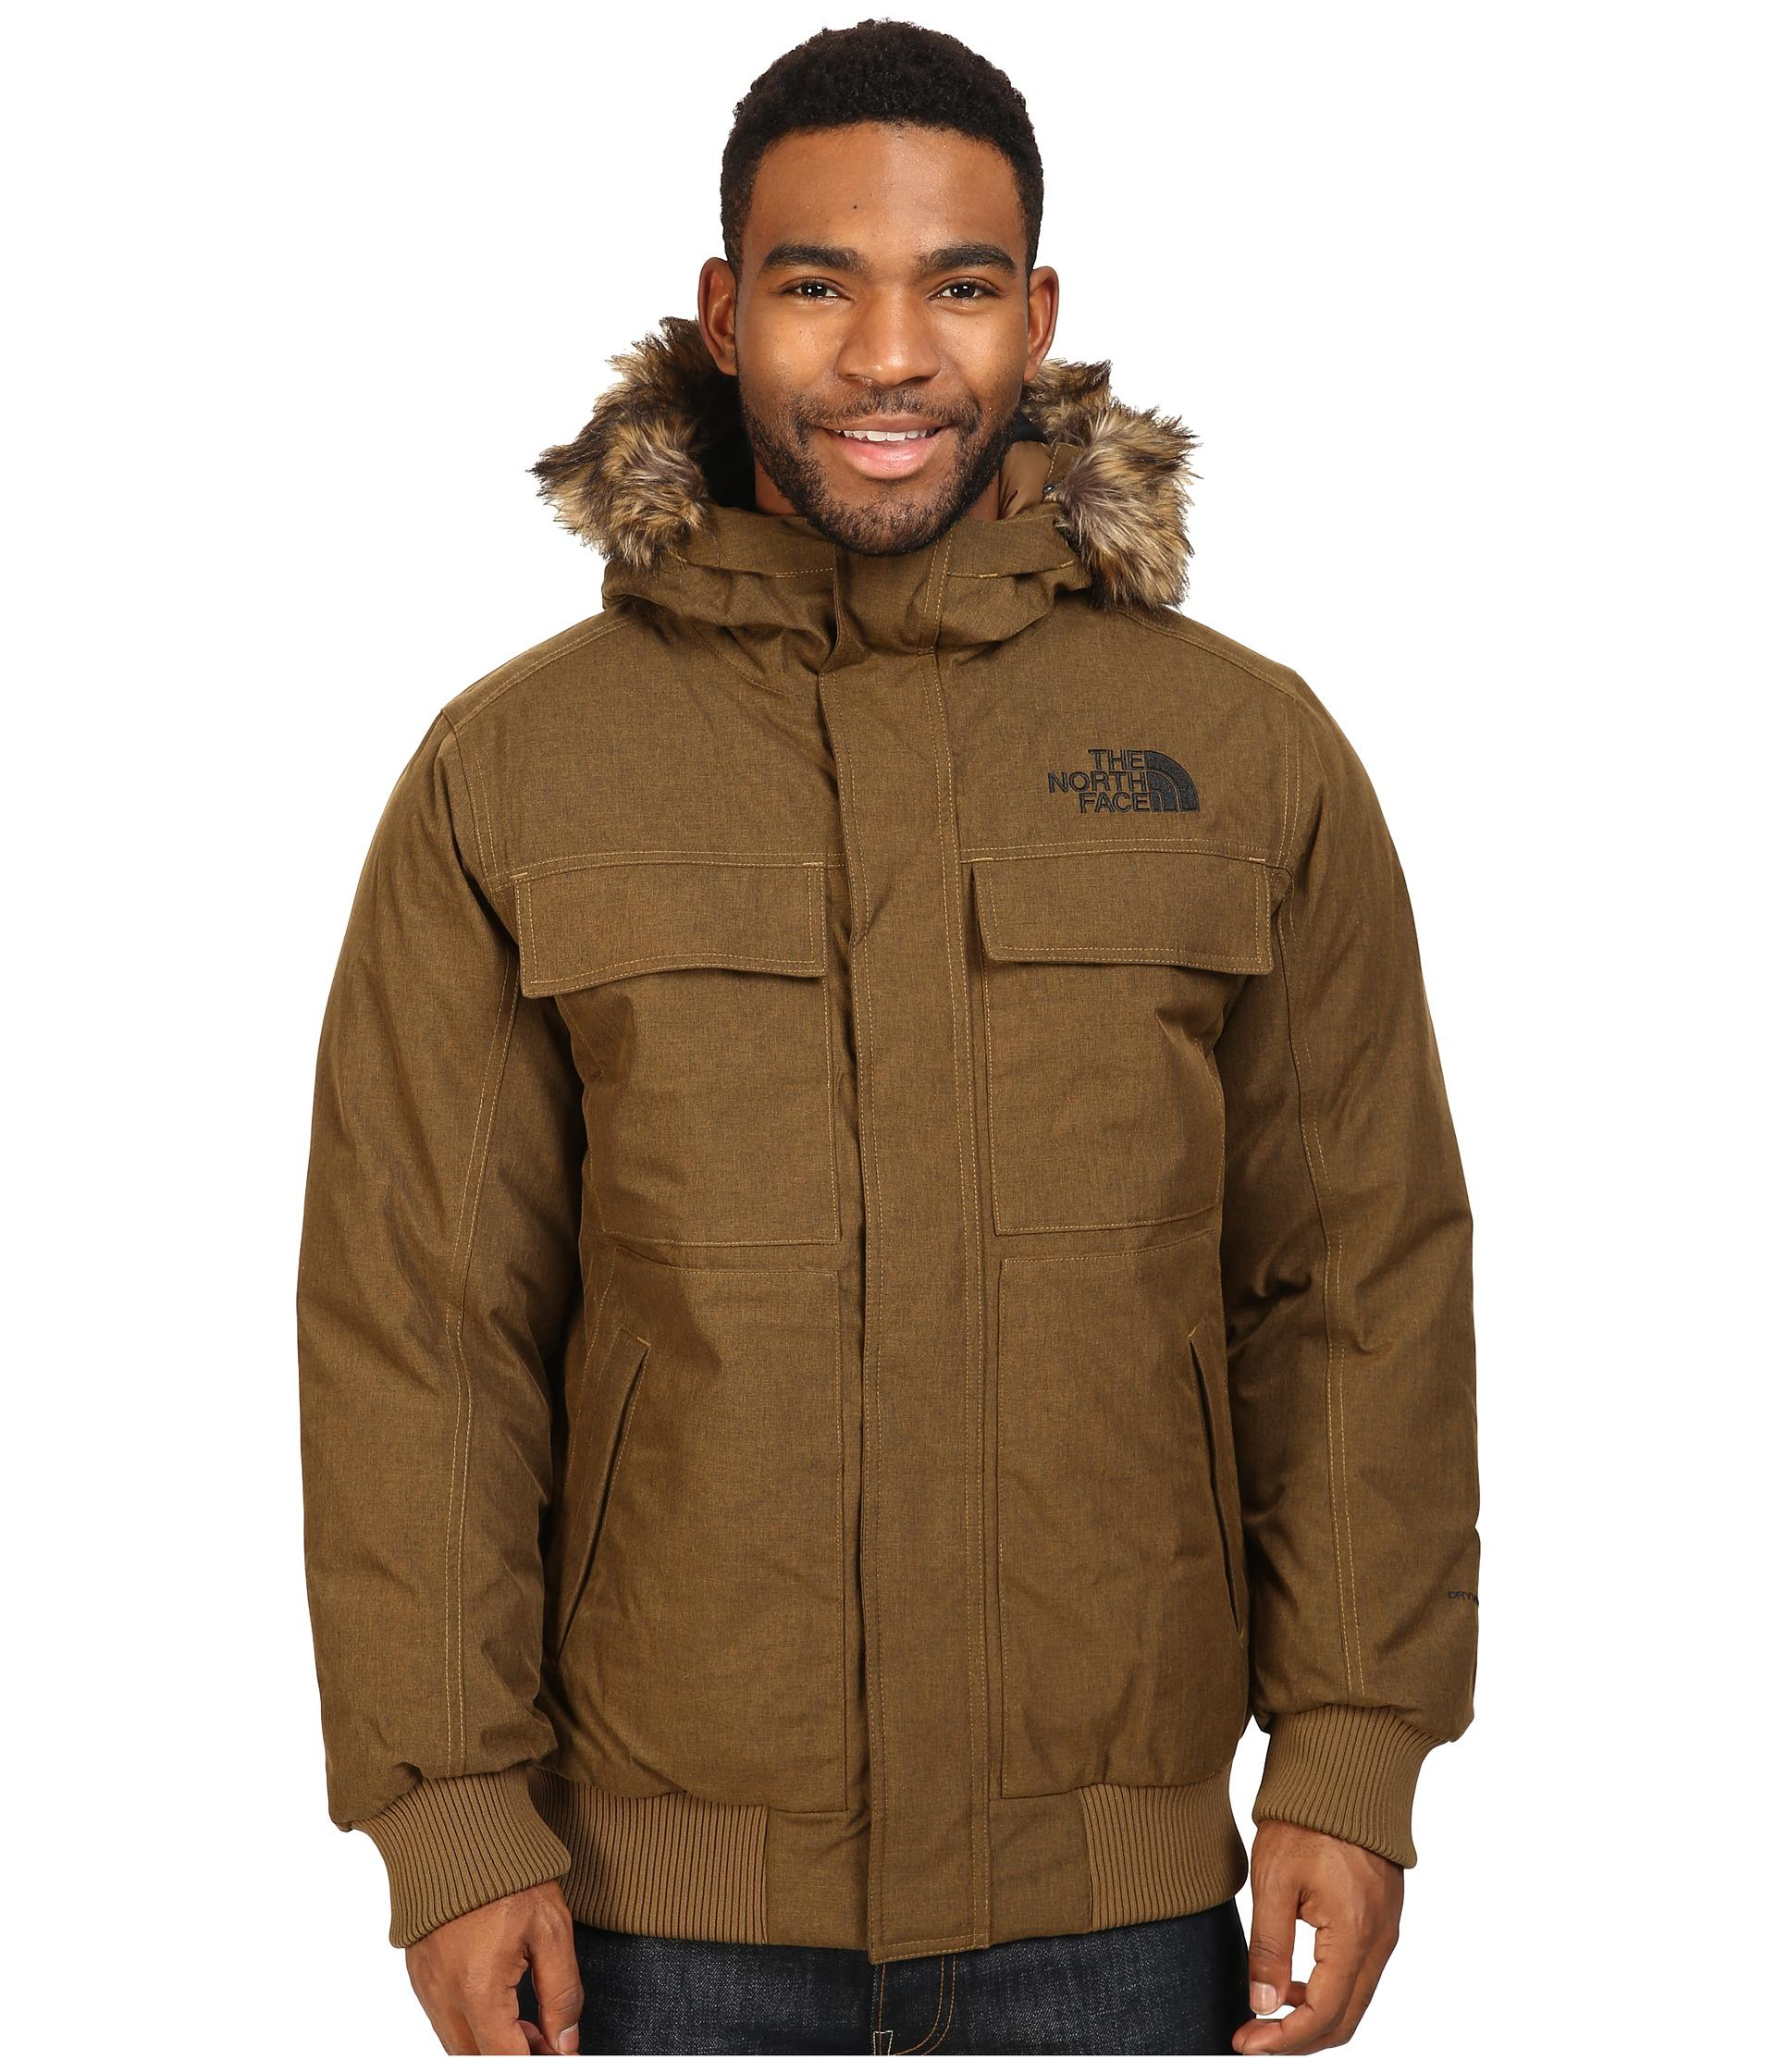 the north face gotham ii jacket review